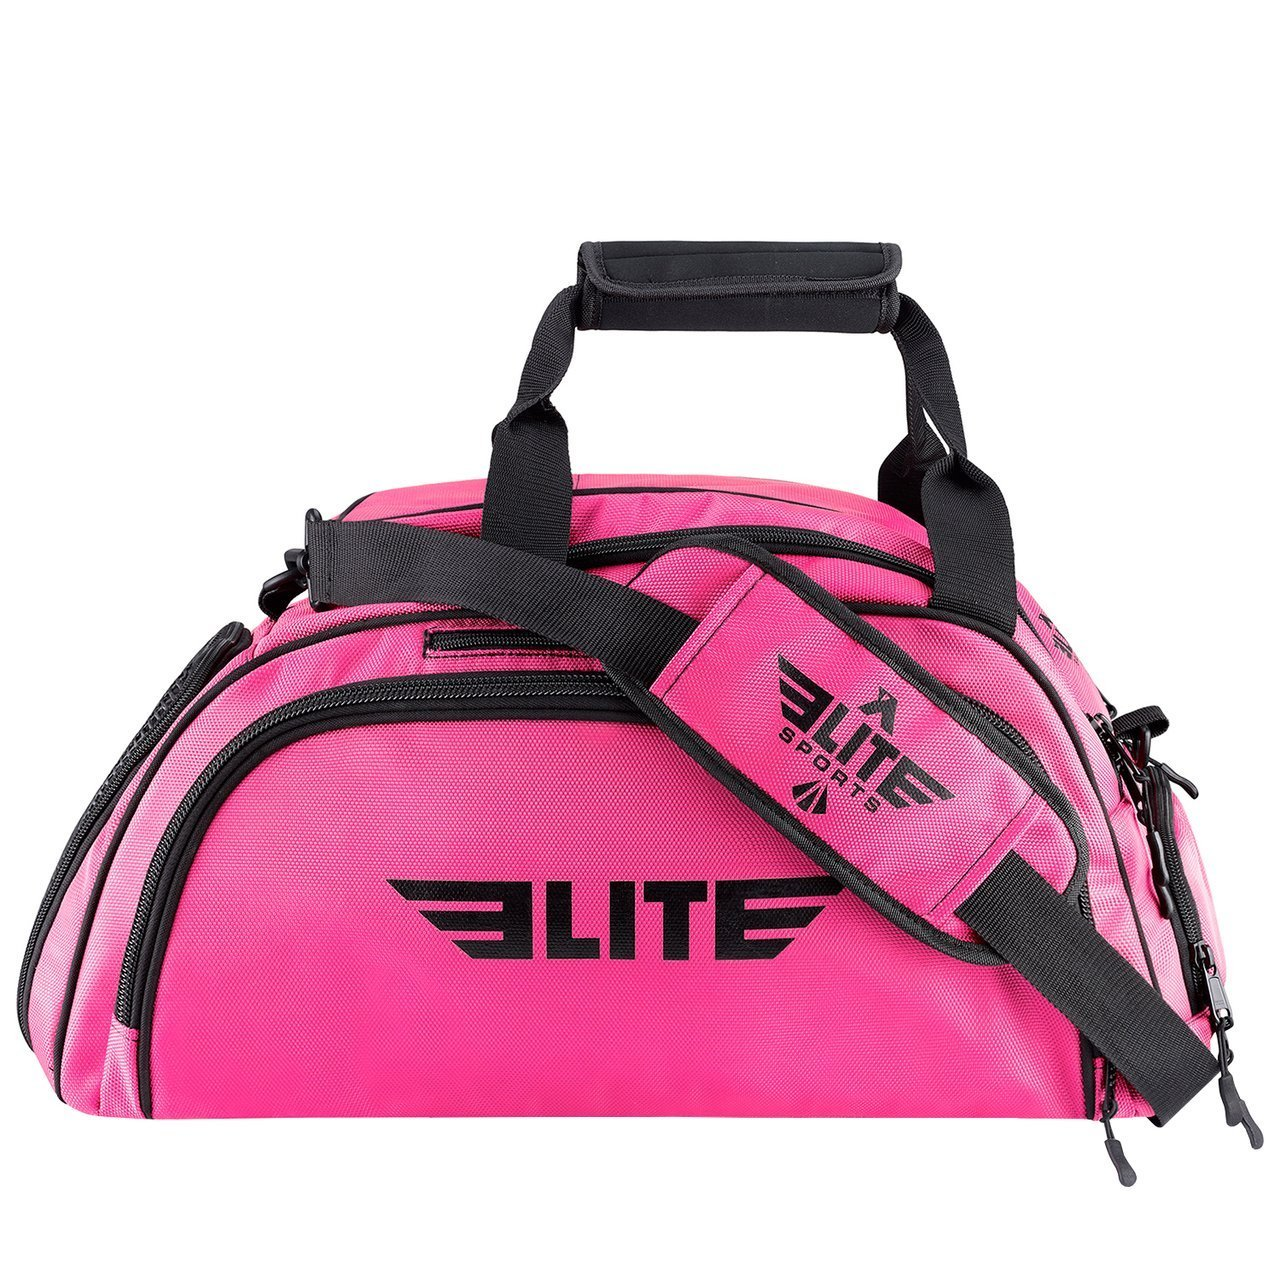 Elite Sports Warrior Series Pink Large Duffel MMA Gear Gym Bag & Backpack